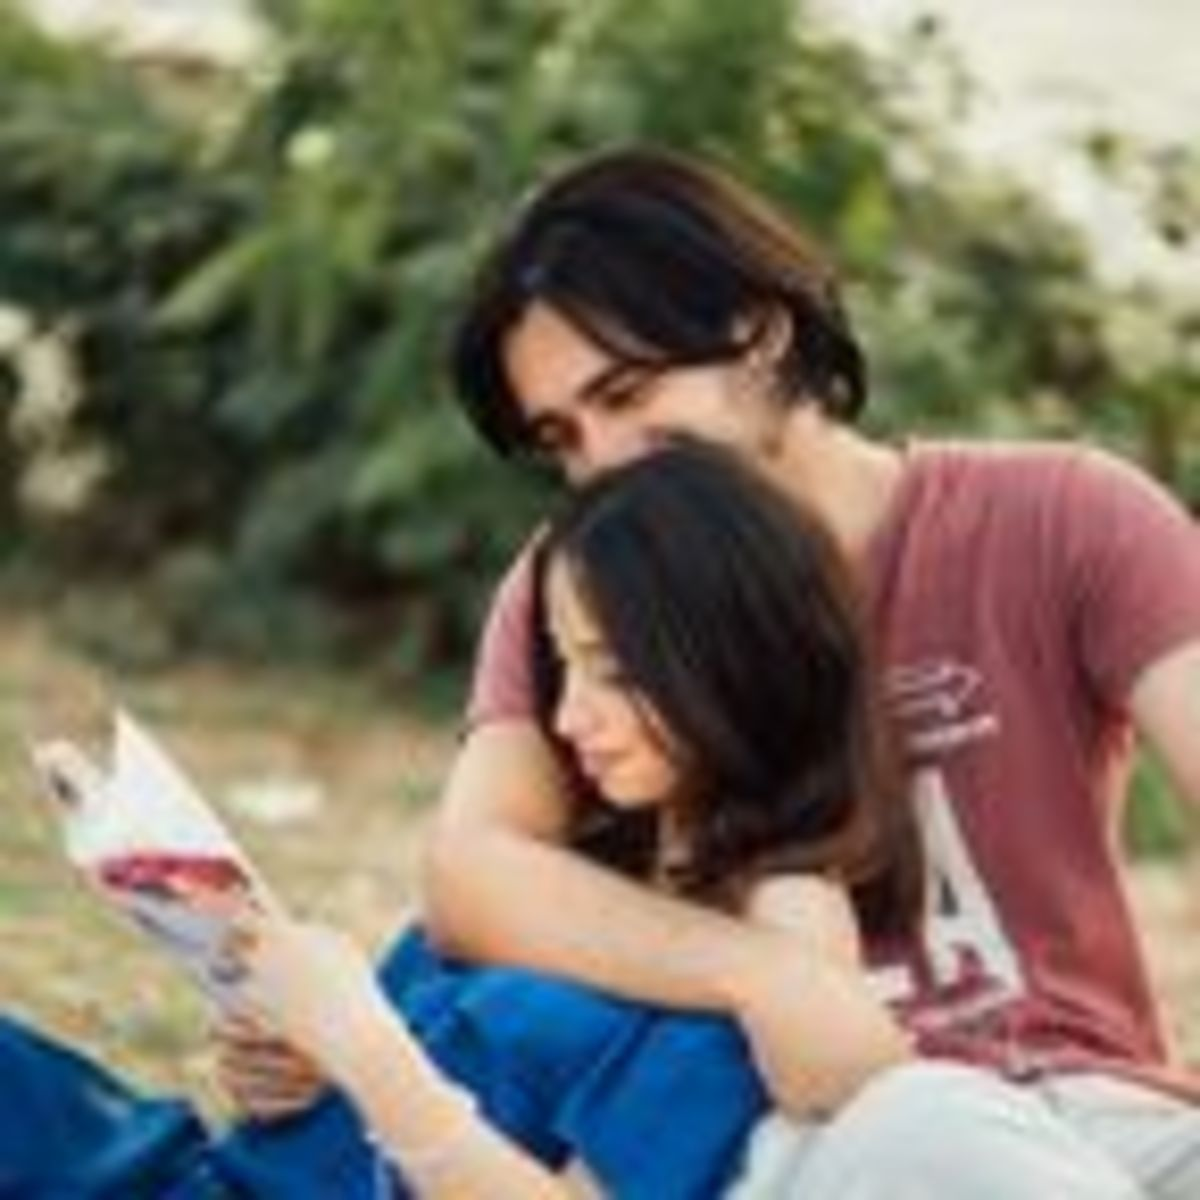 5 Ways to Become More Attractive to Others | Psychology Today